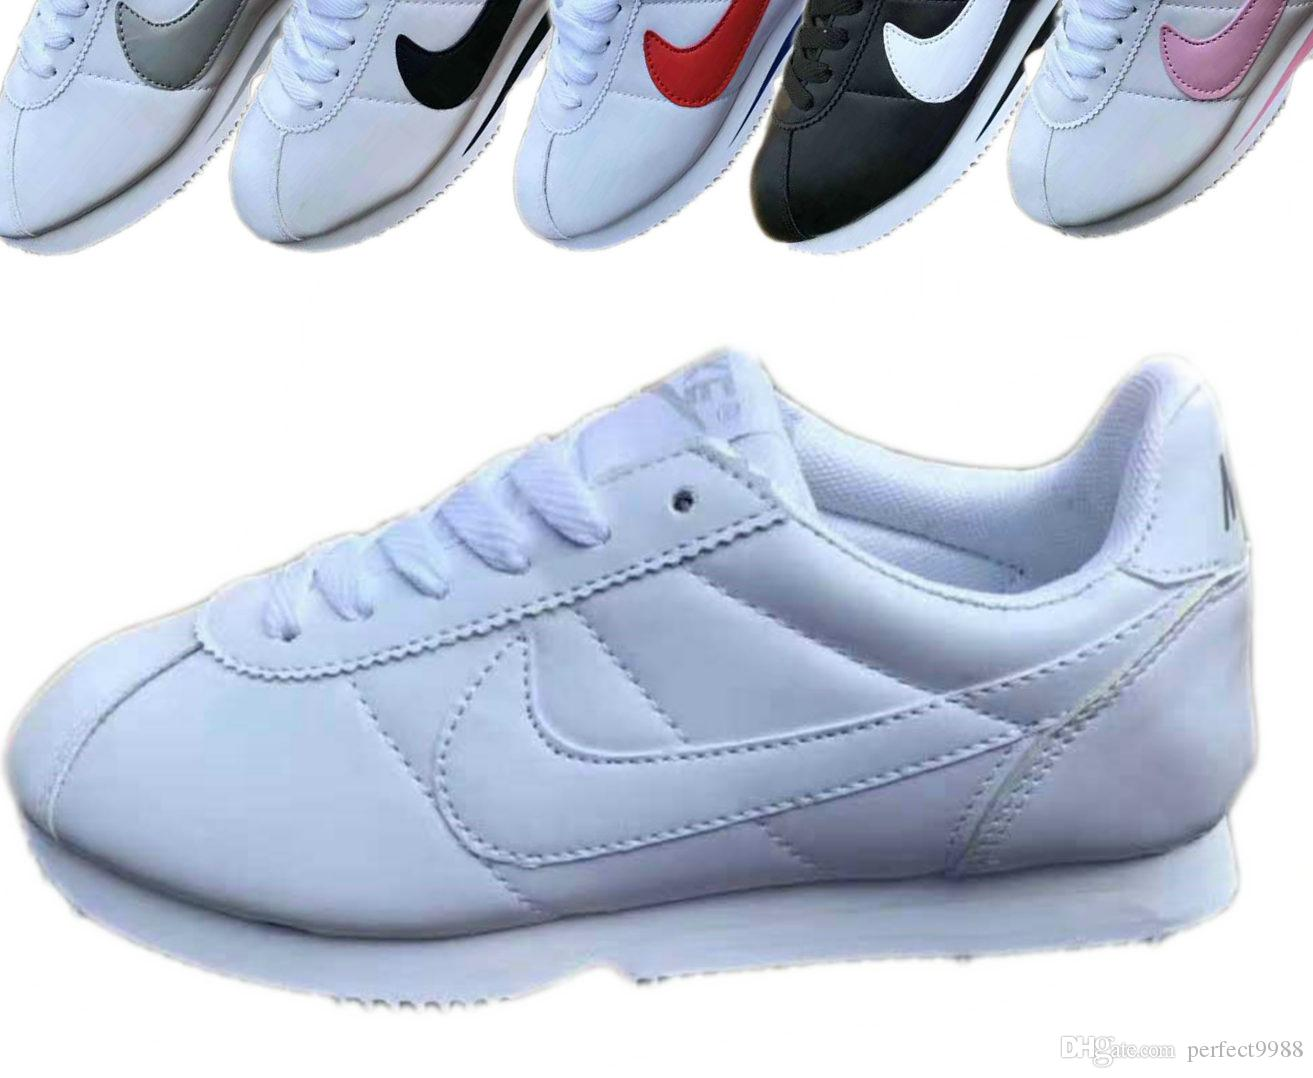 new product c8cd3 41ed2 Casual Shoes CLASSIC CORTEZ QS Support Sneakers Training Fashion Women and  Men Sweetheart shoes Ventilation Sports shoes EURO 36-44